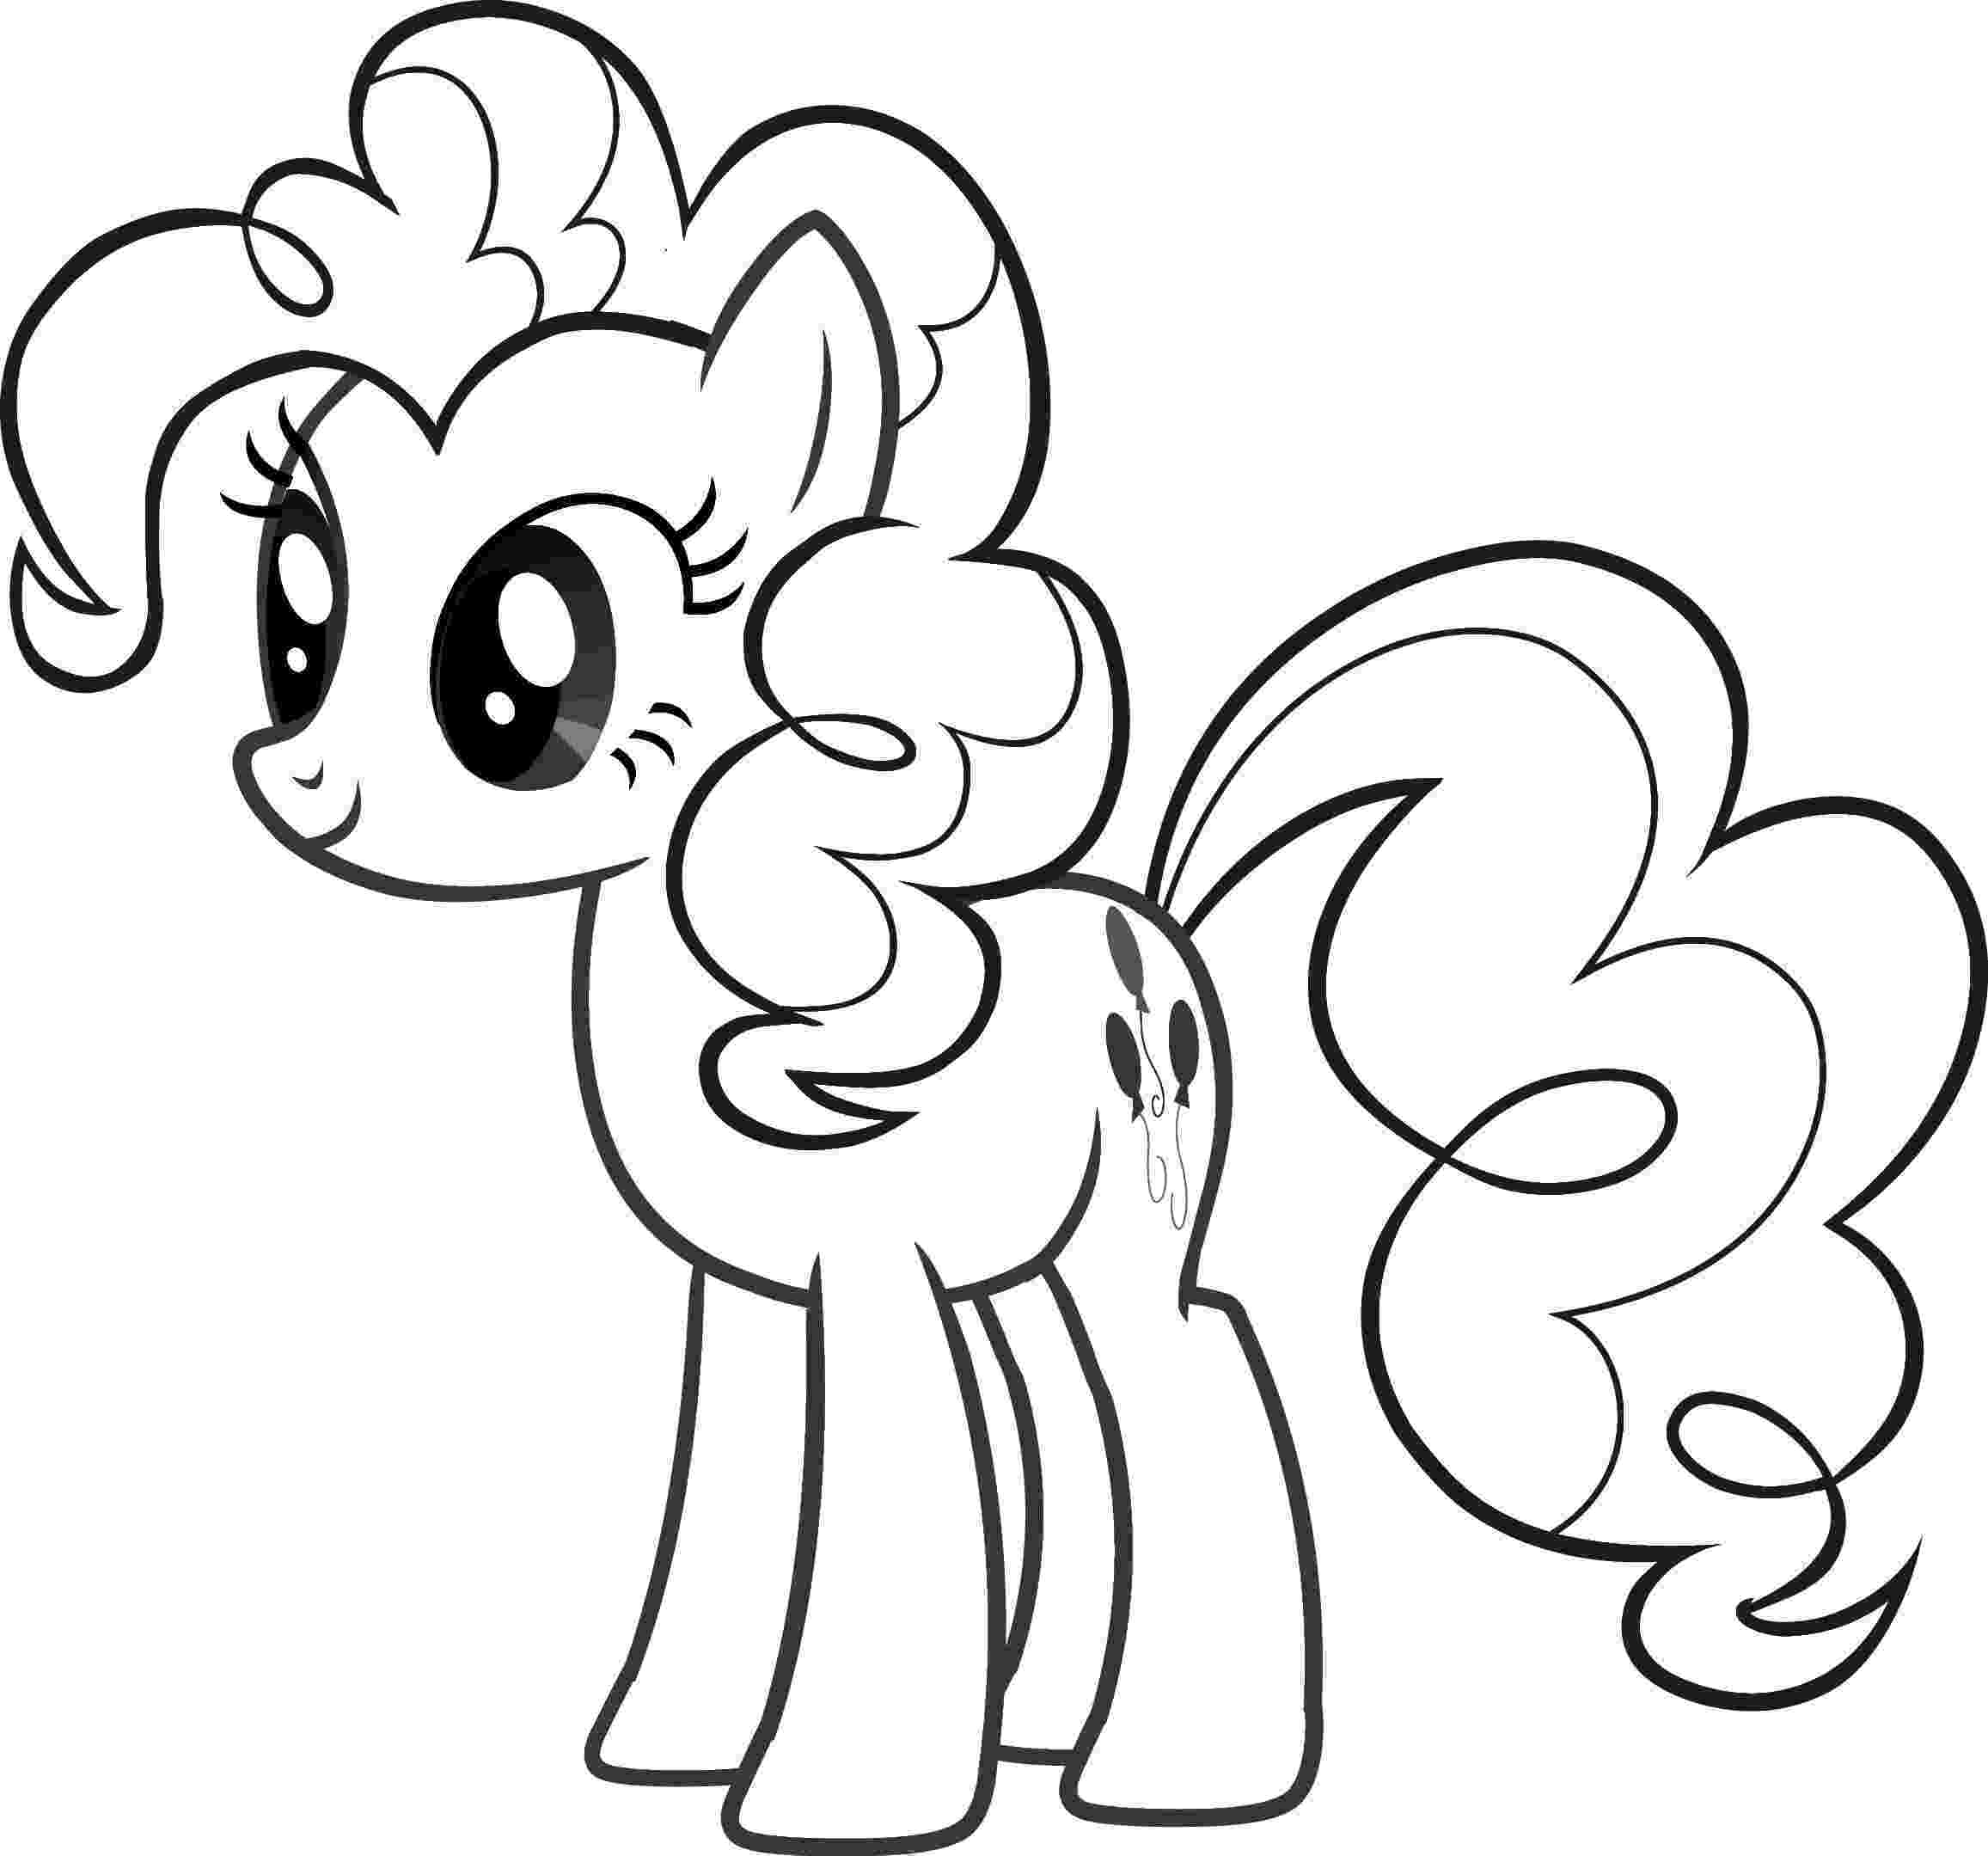 my little pony friendship is magic colouring pages my little pony colouring sheets pinkie pie my little little pages friendship my colouring magic is pony